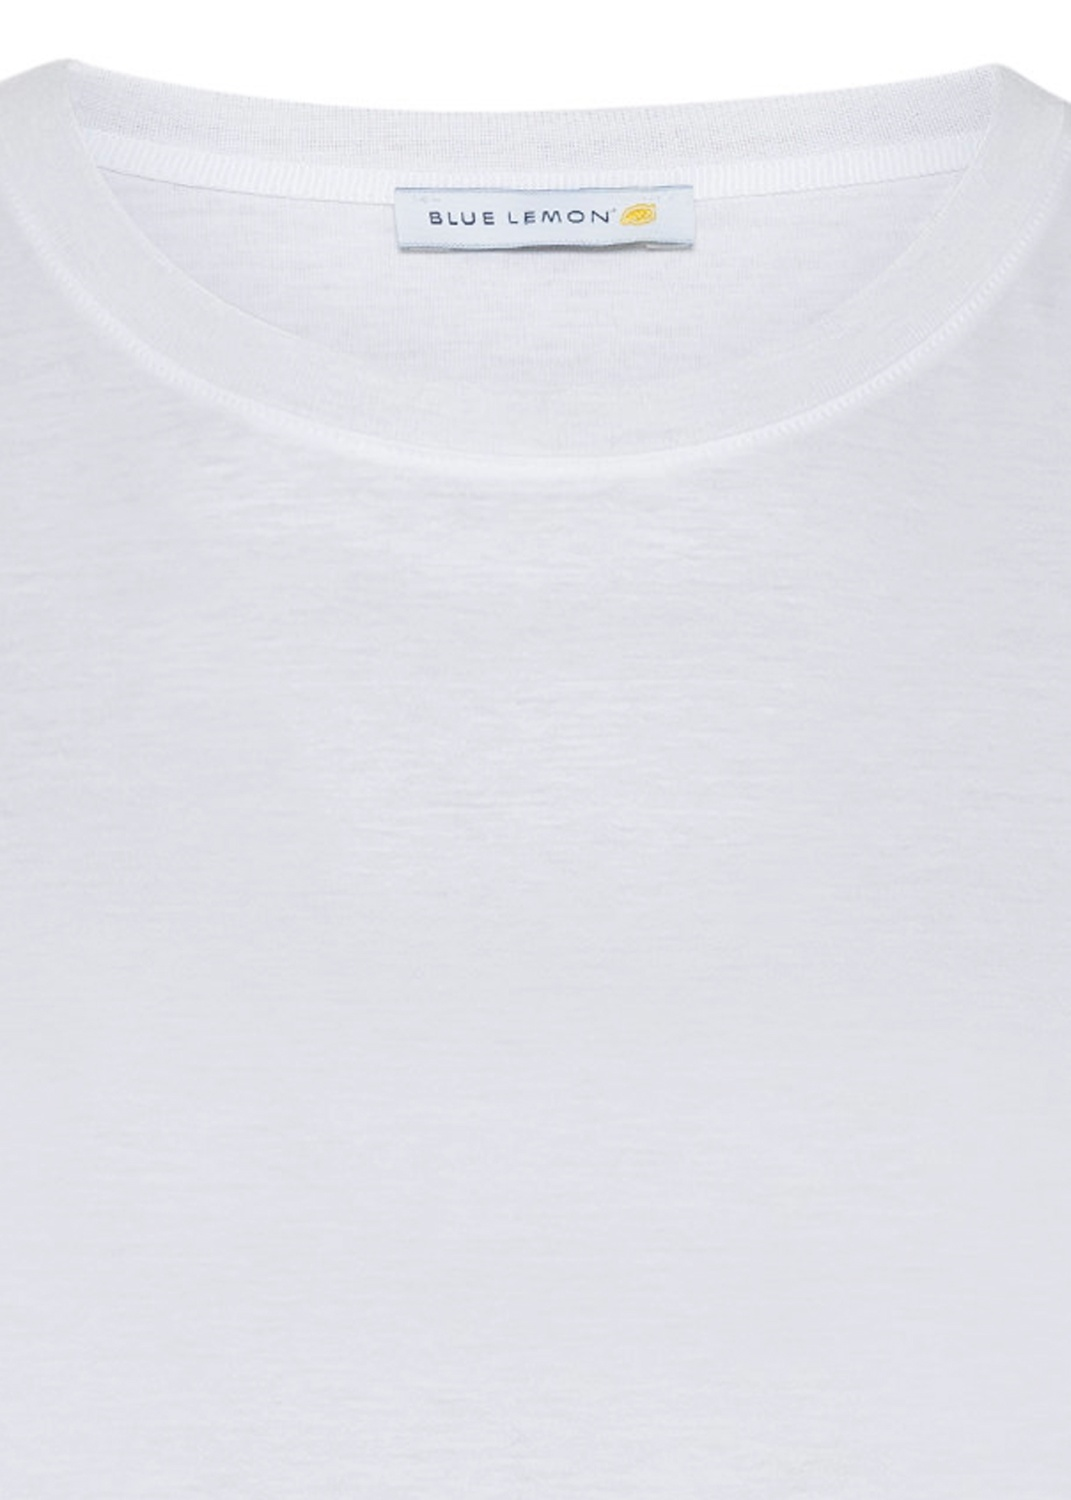 White Tee image number 2